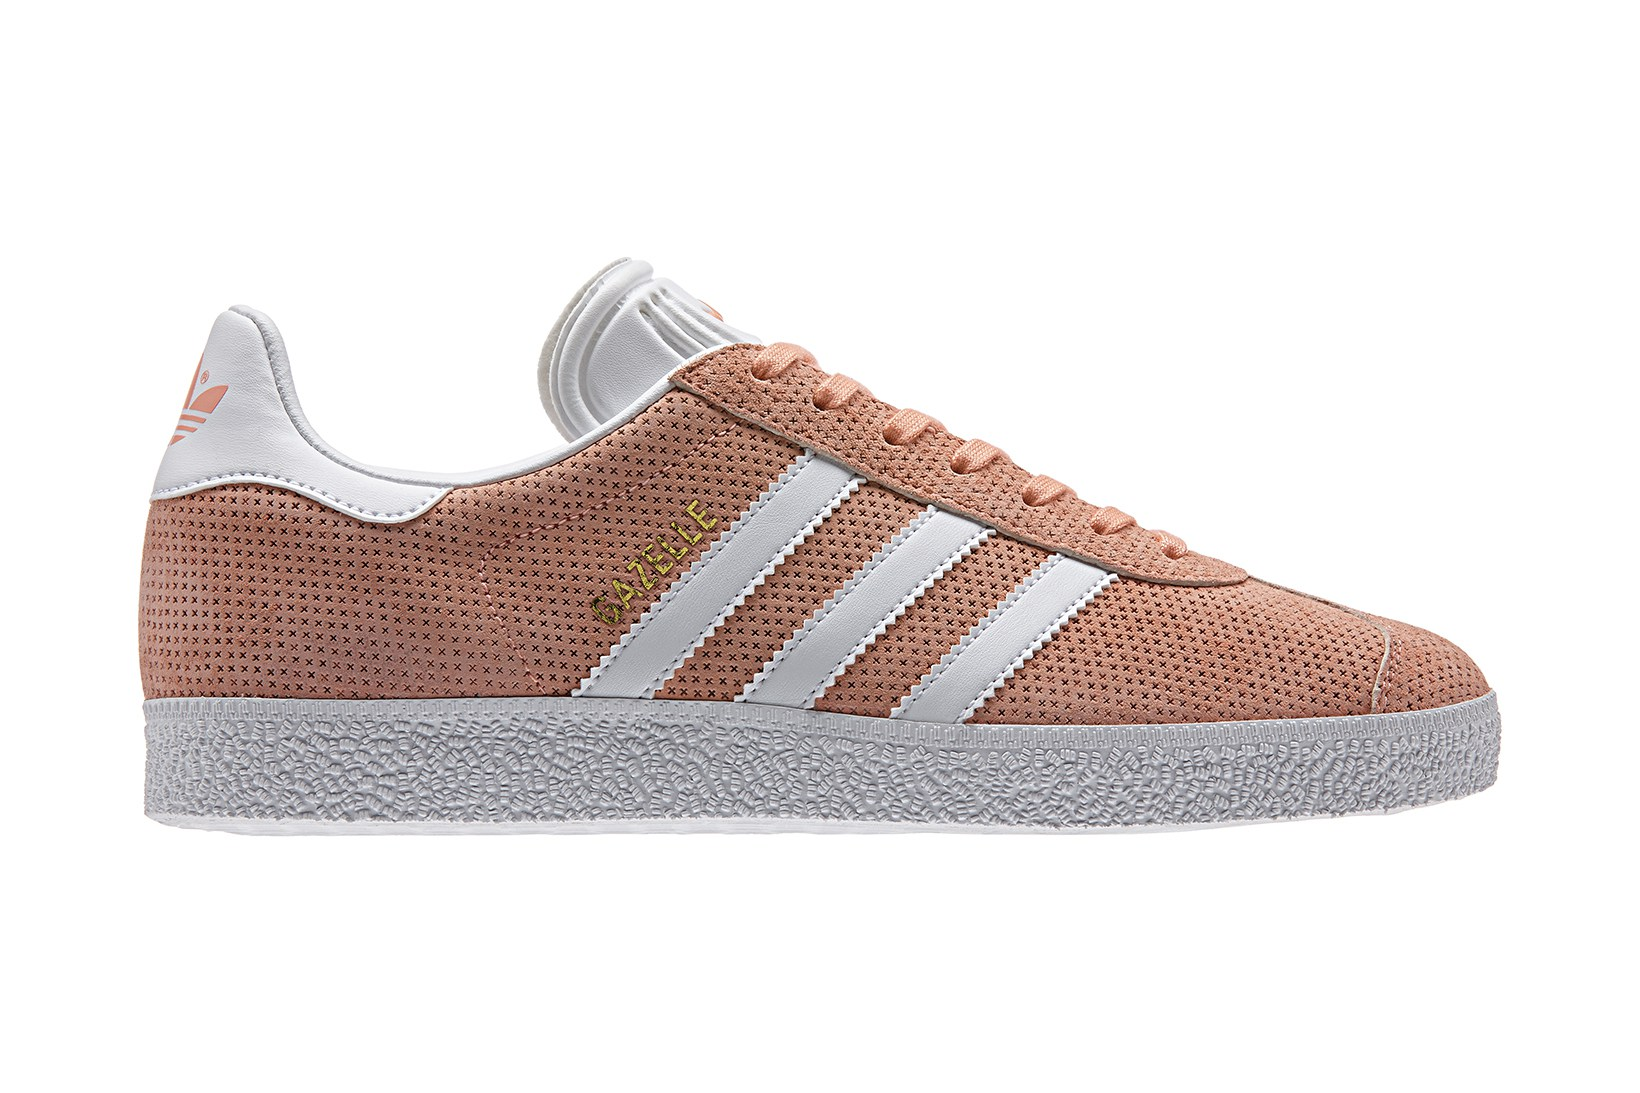 adidas-originals-gazelle-perforation-pack-1